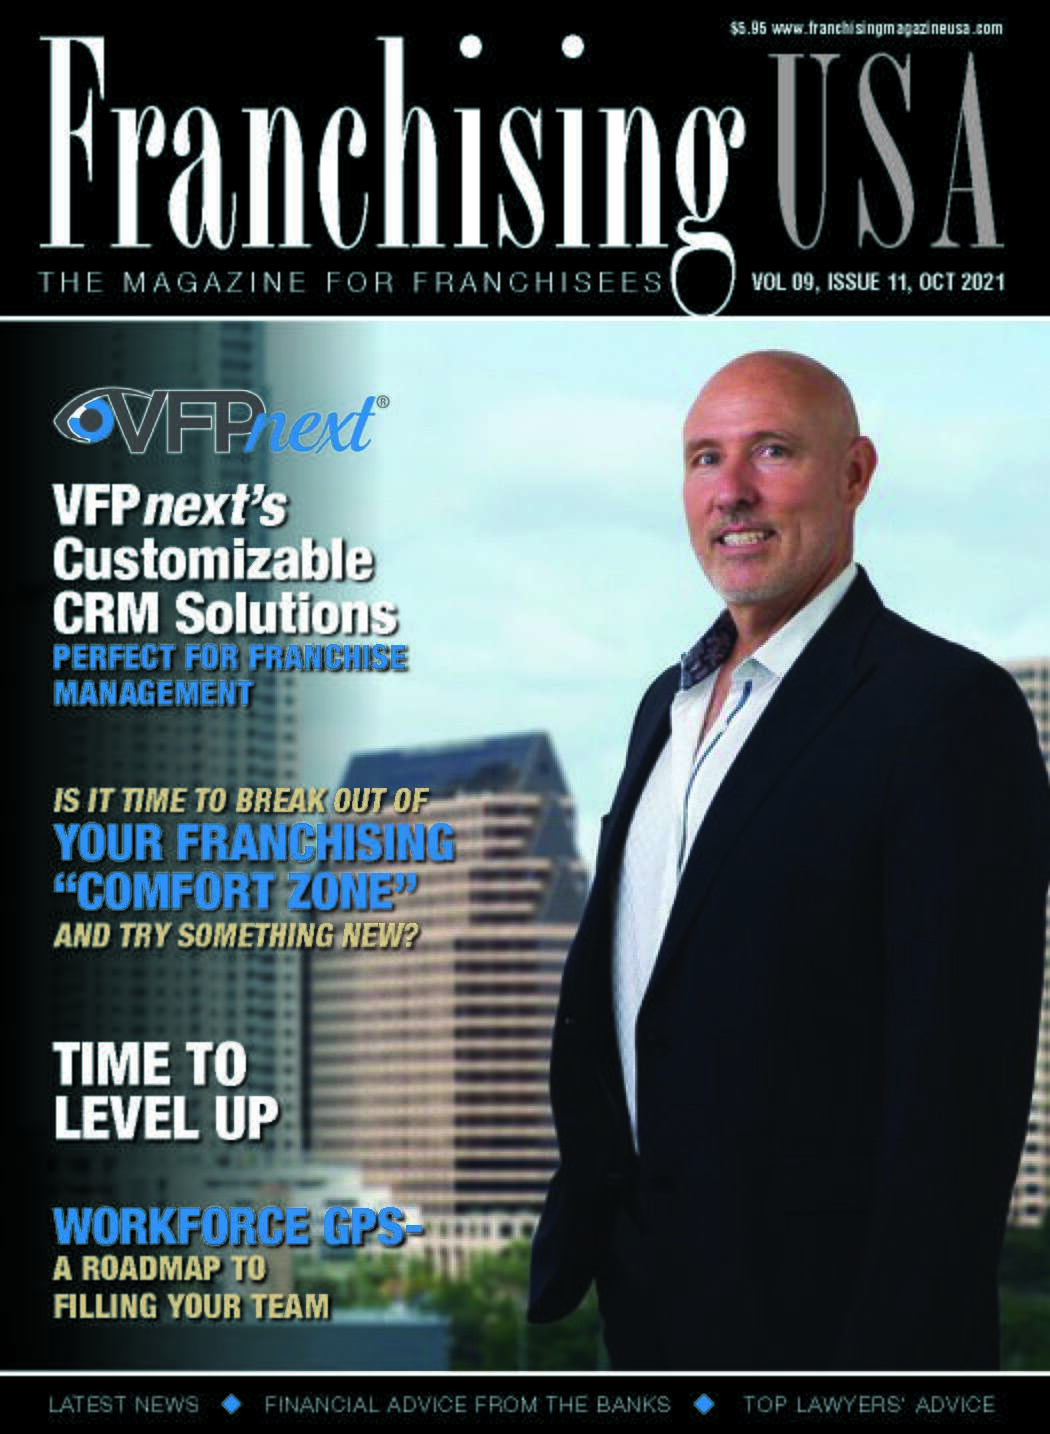 VFPnext's Customizable CRM Solutions Perfect for Franchise Management